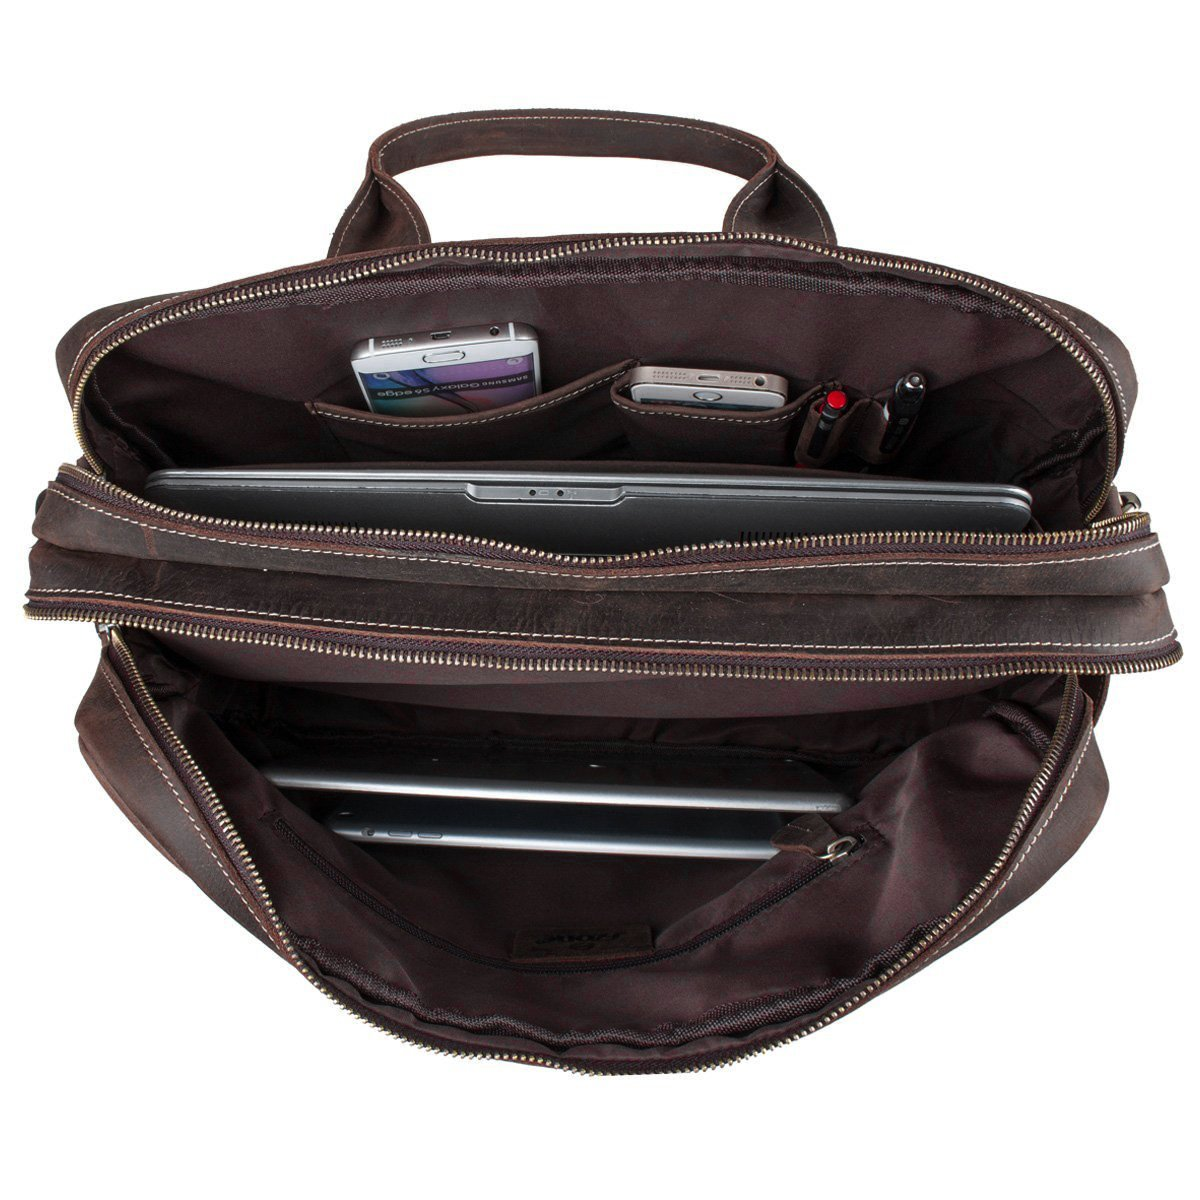 S-ZONE Crazy Horse Leather Shoulder Briefcase for 16 Inch Laptop Bag by S-ZONE (Image #3)